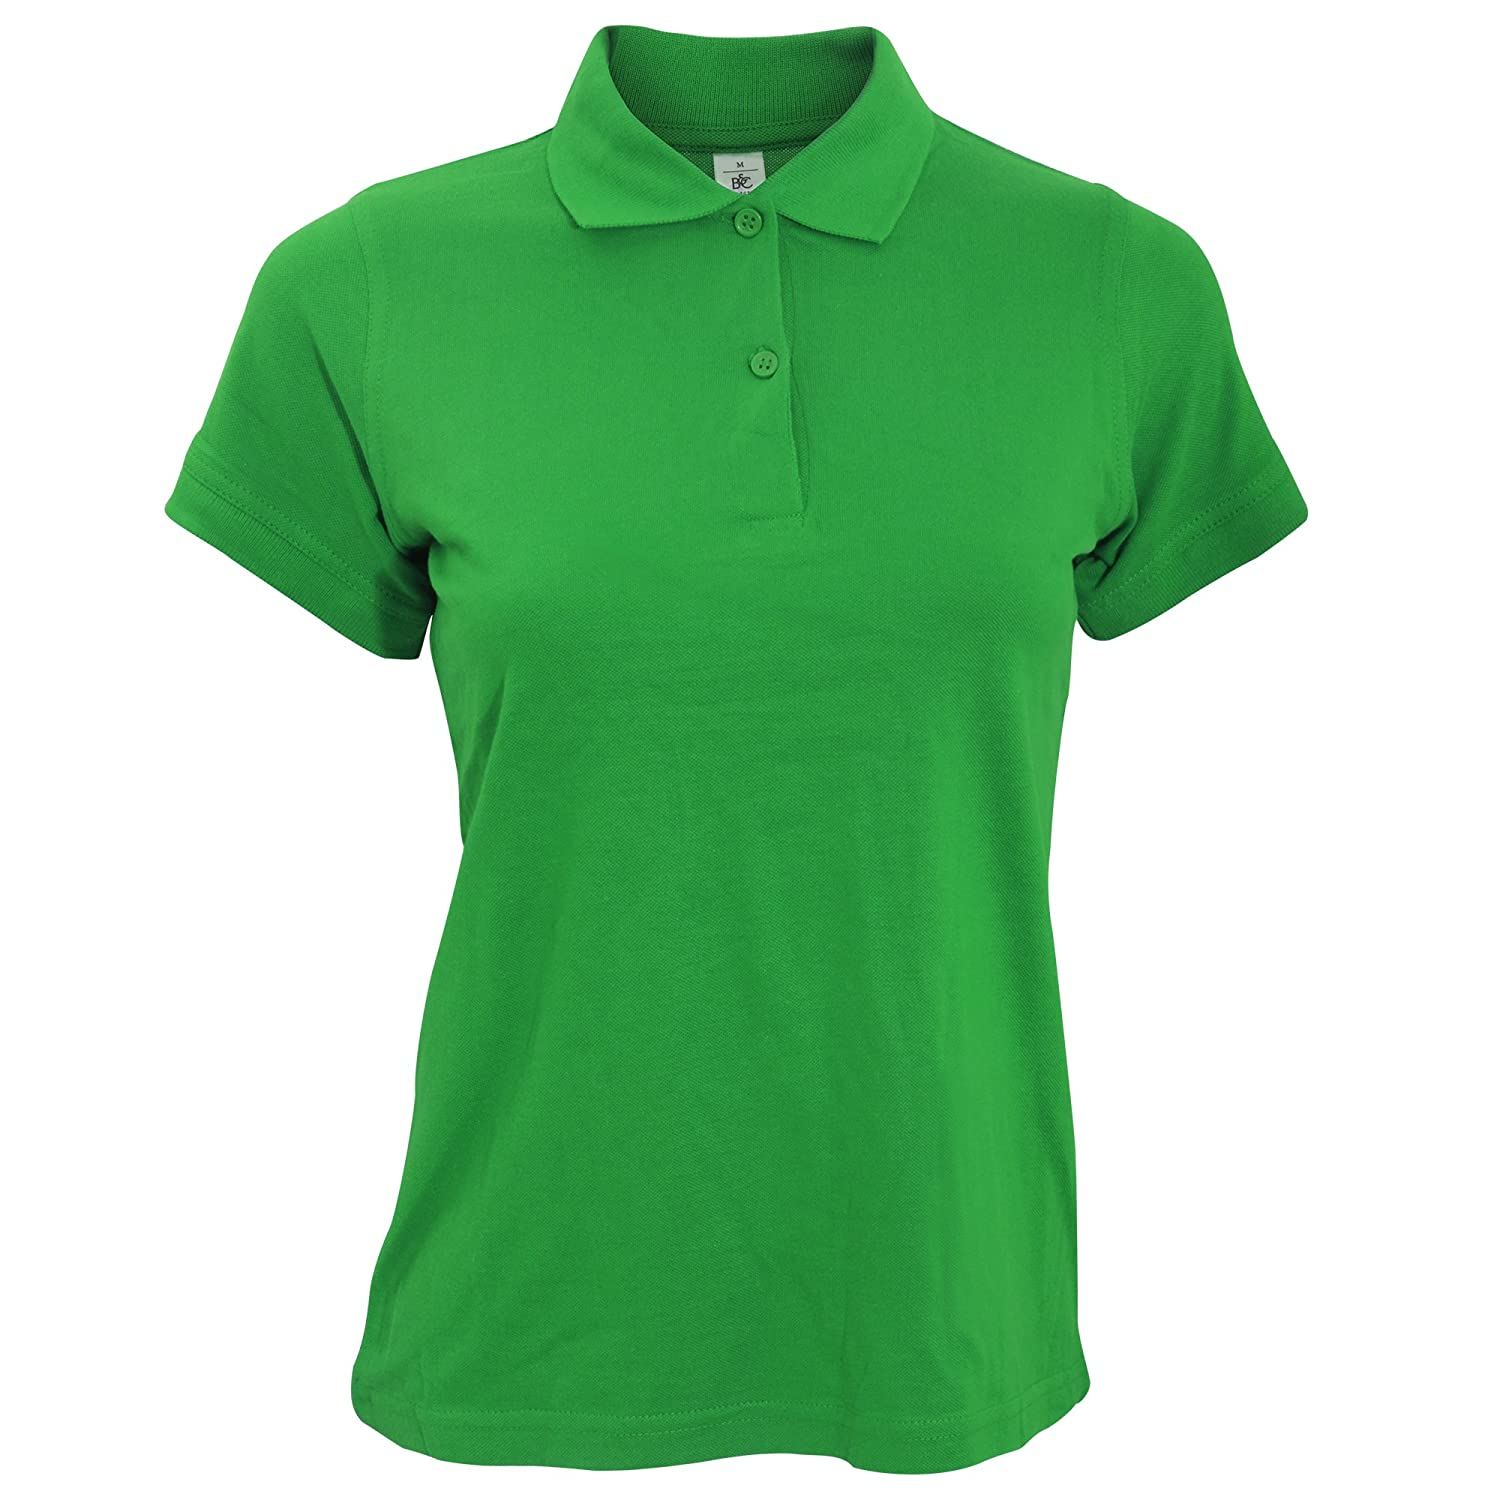 B&C Safran Pure Ladies Short Sleeve Polo Shirt B and C